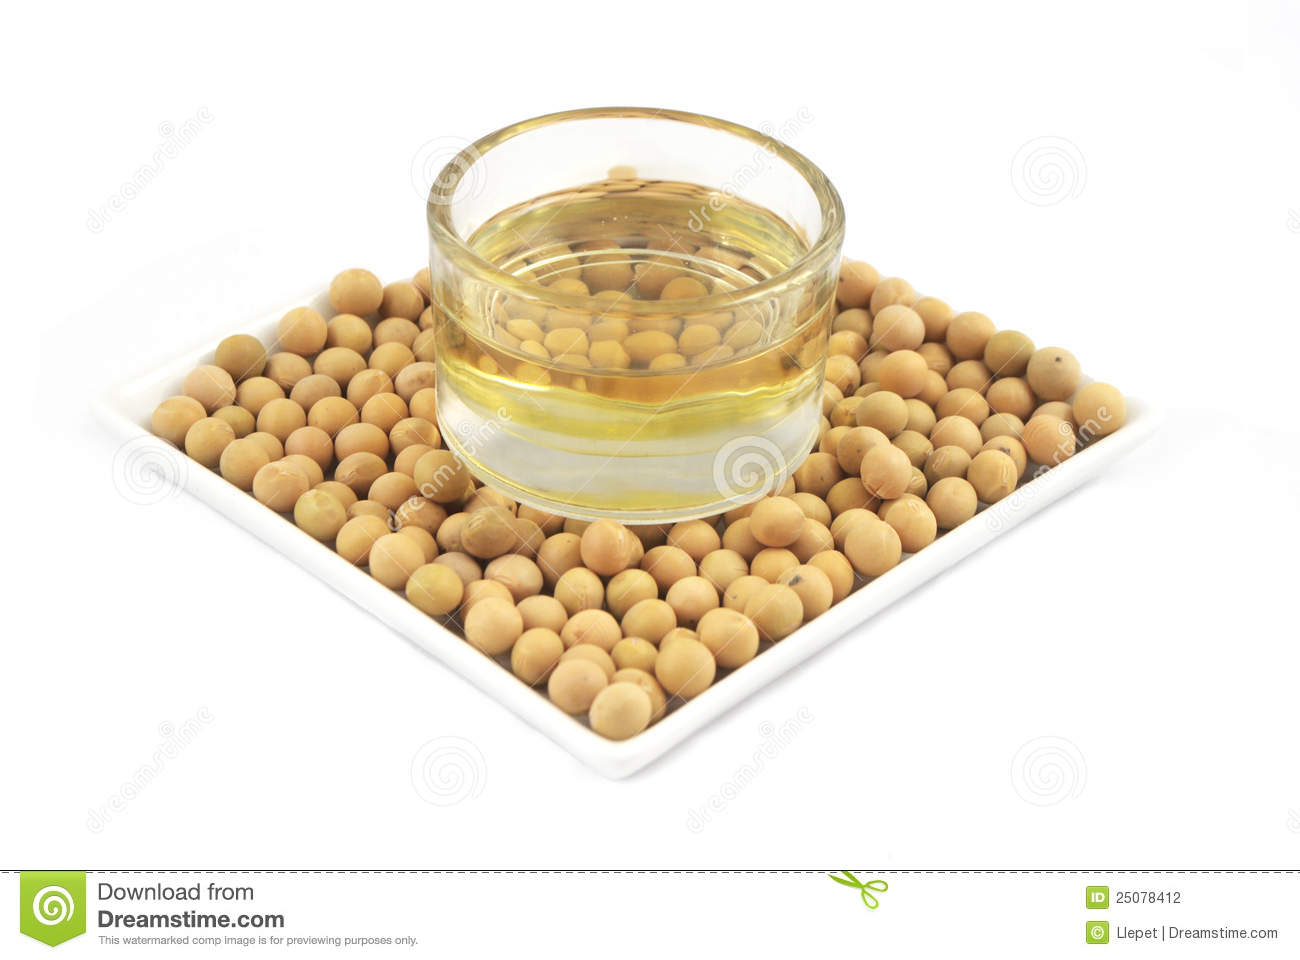 Soybean Oil, Soybean Oil Suppliers and Manufacturers at Alibaba.com